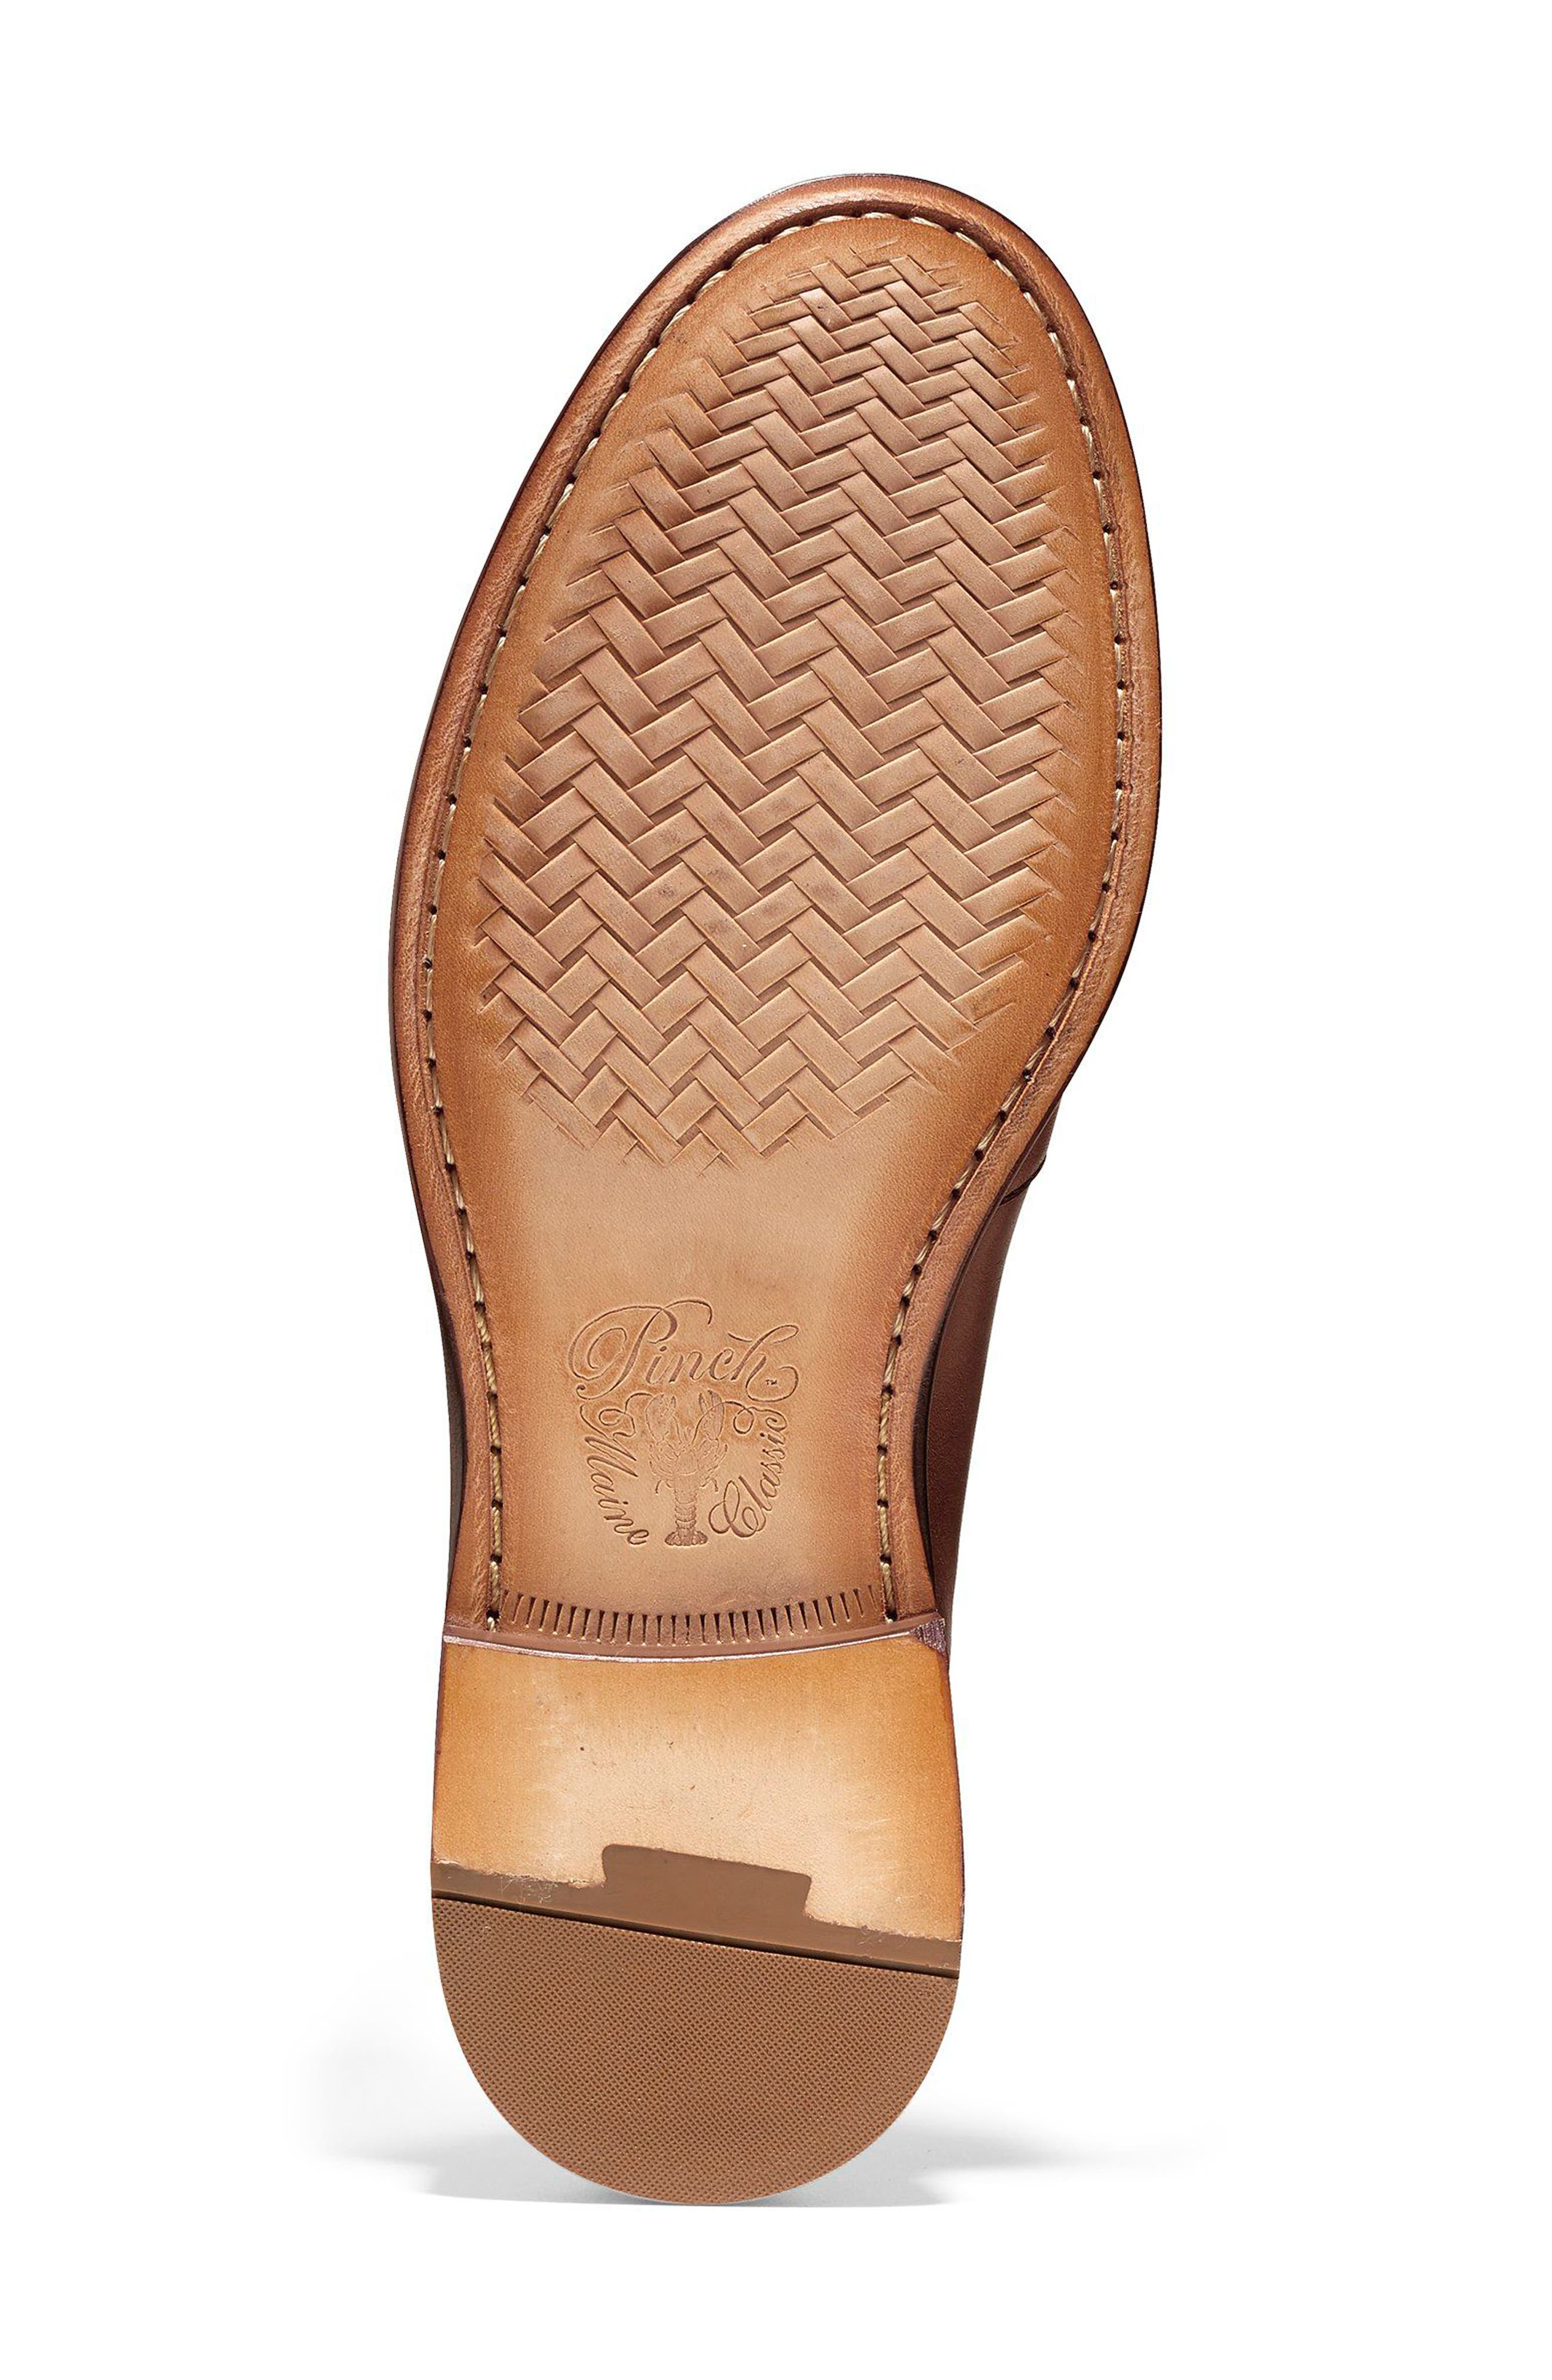 Pinch Penny Loafer,                             Alternate thumbnail 6, color,                             BRITISH TAN LEATHER